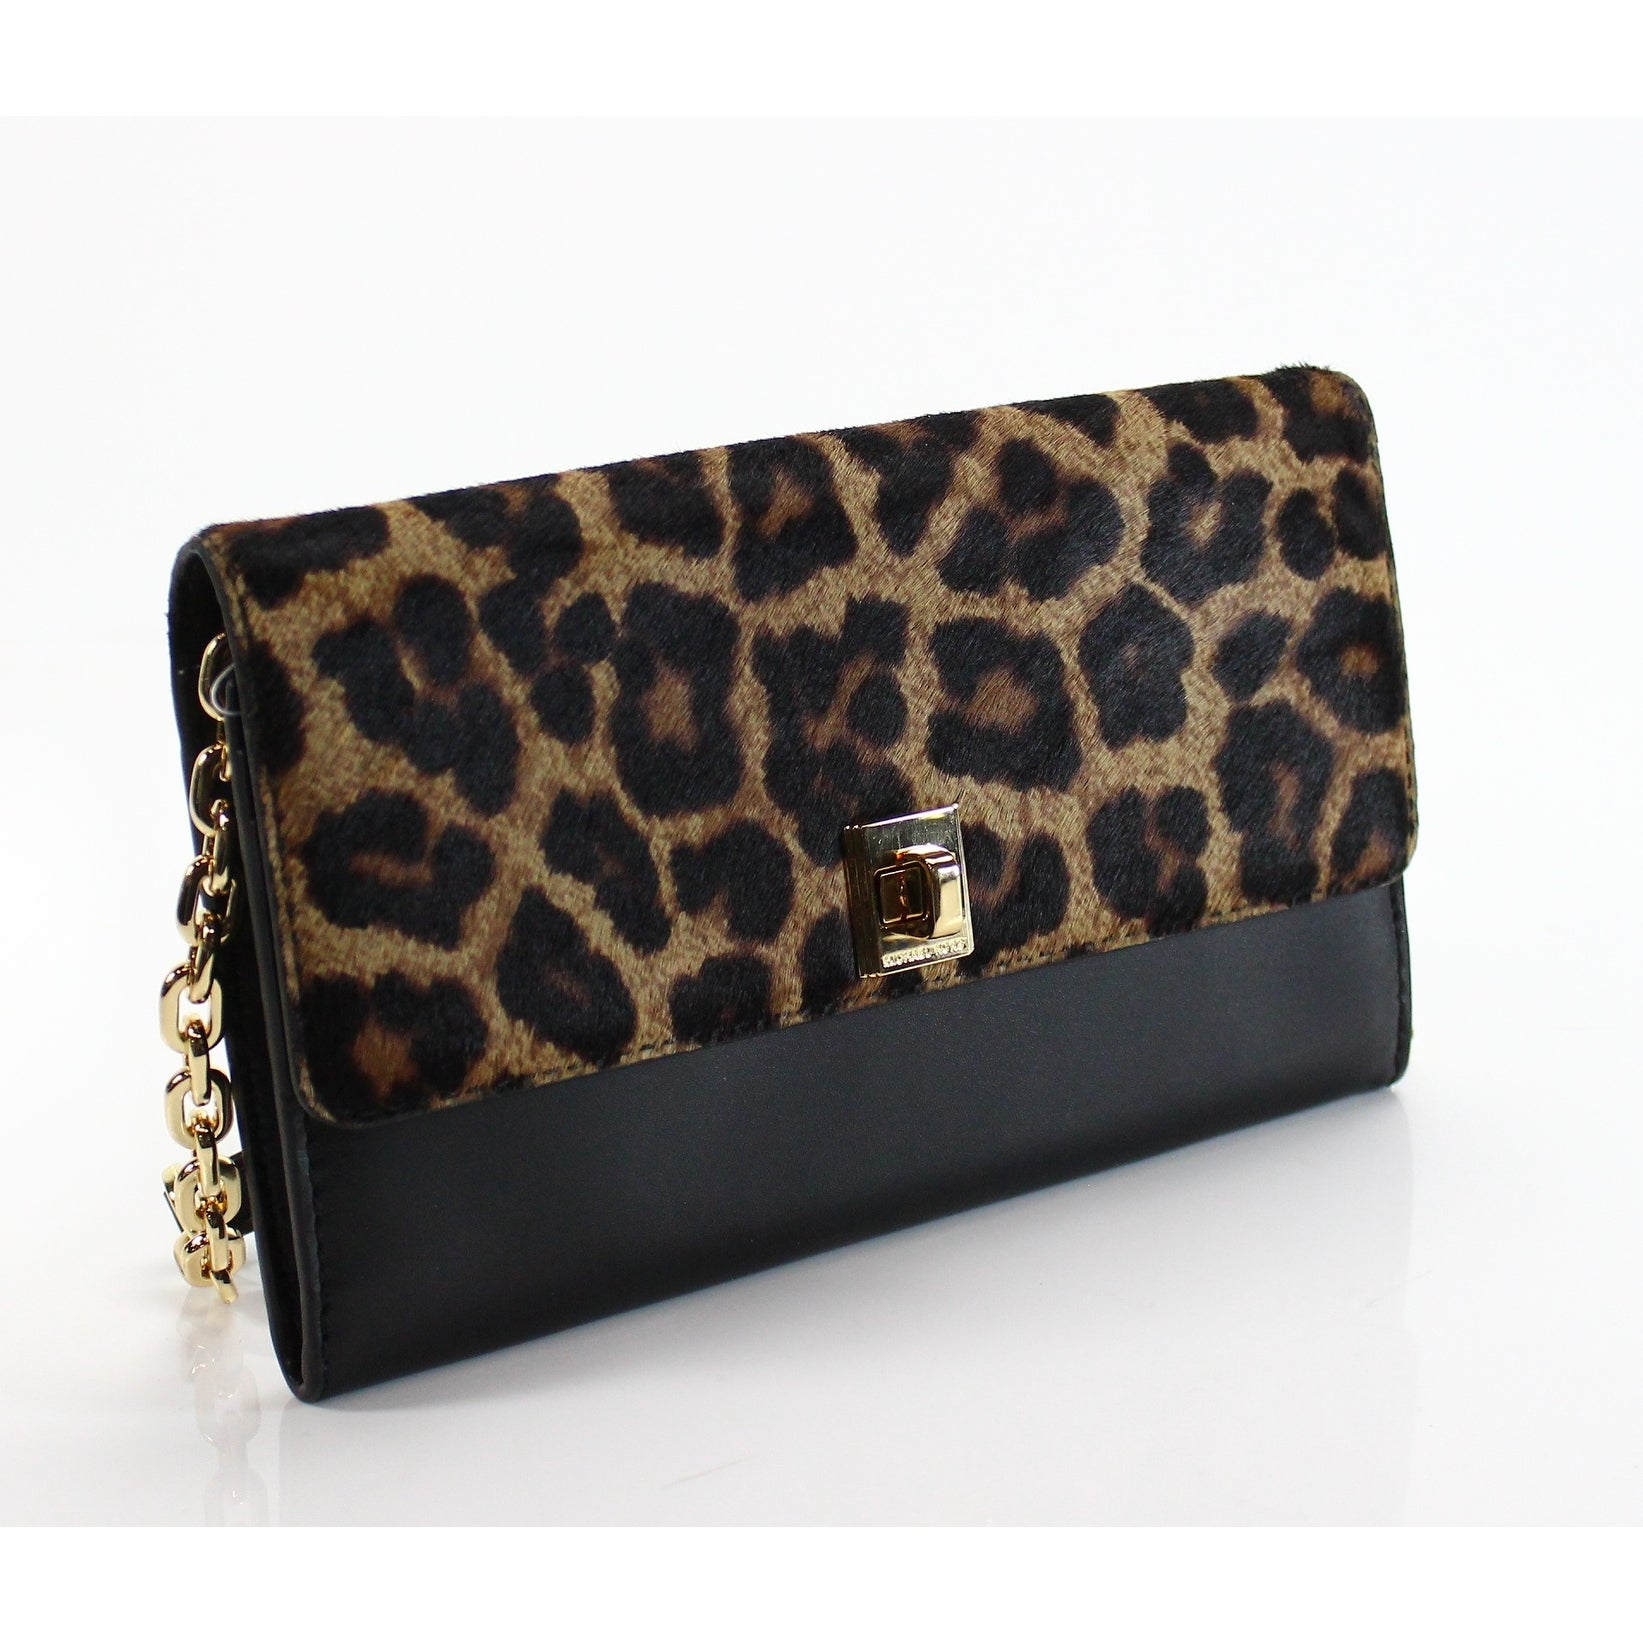 a69b7b095728 Shop Michael Kors NEW Black Leopard Haircalf Wallet On A Chain Leather Purse  - Free Shipping Today - Overstock - 18371744